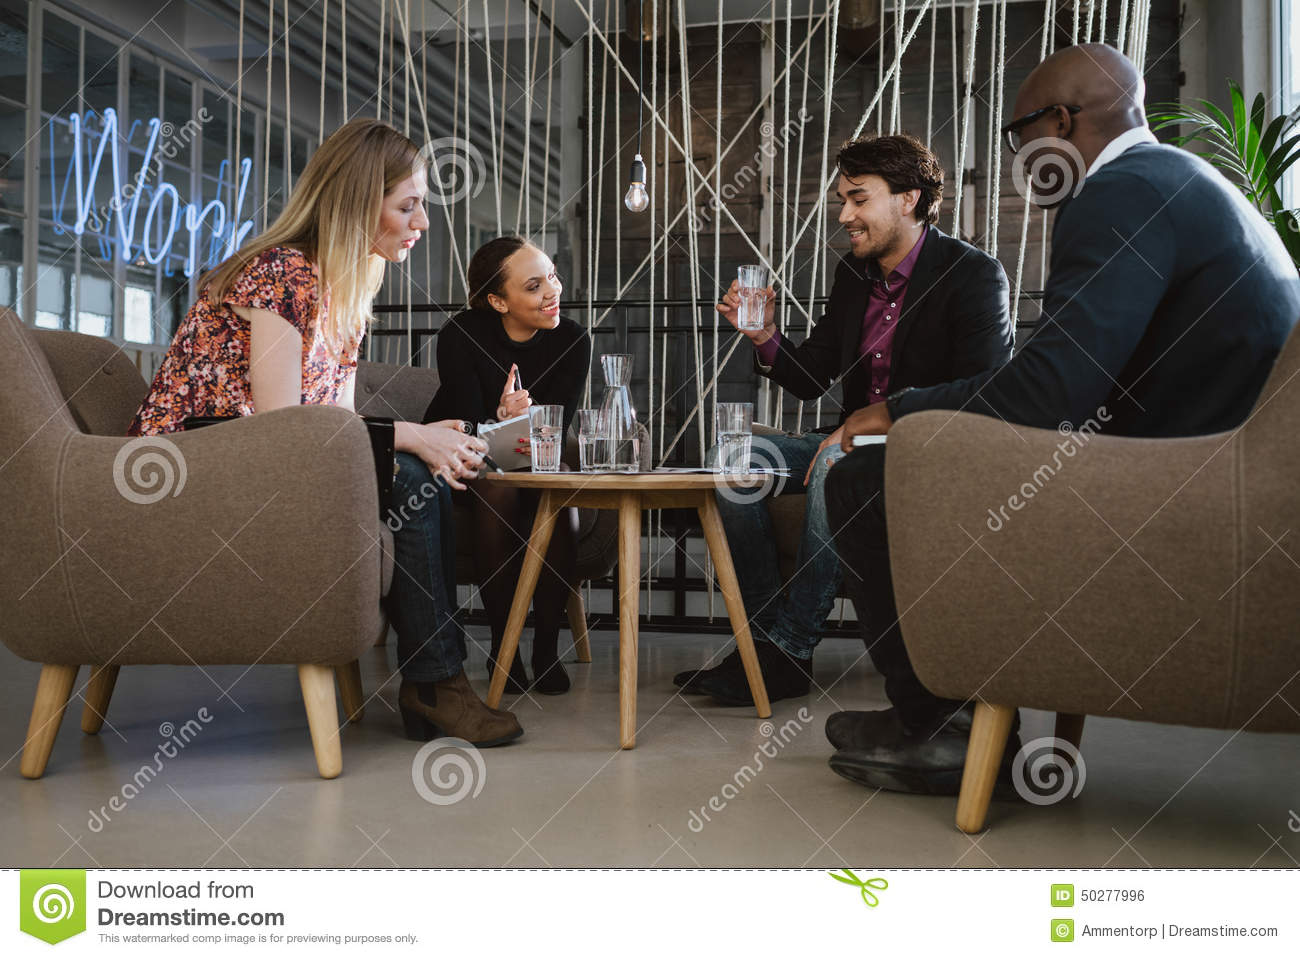 Best drink options on a business meeting